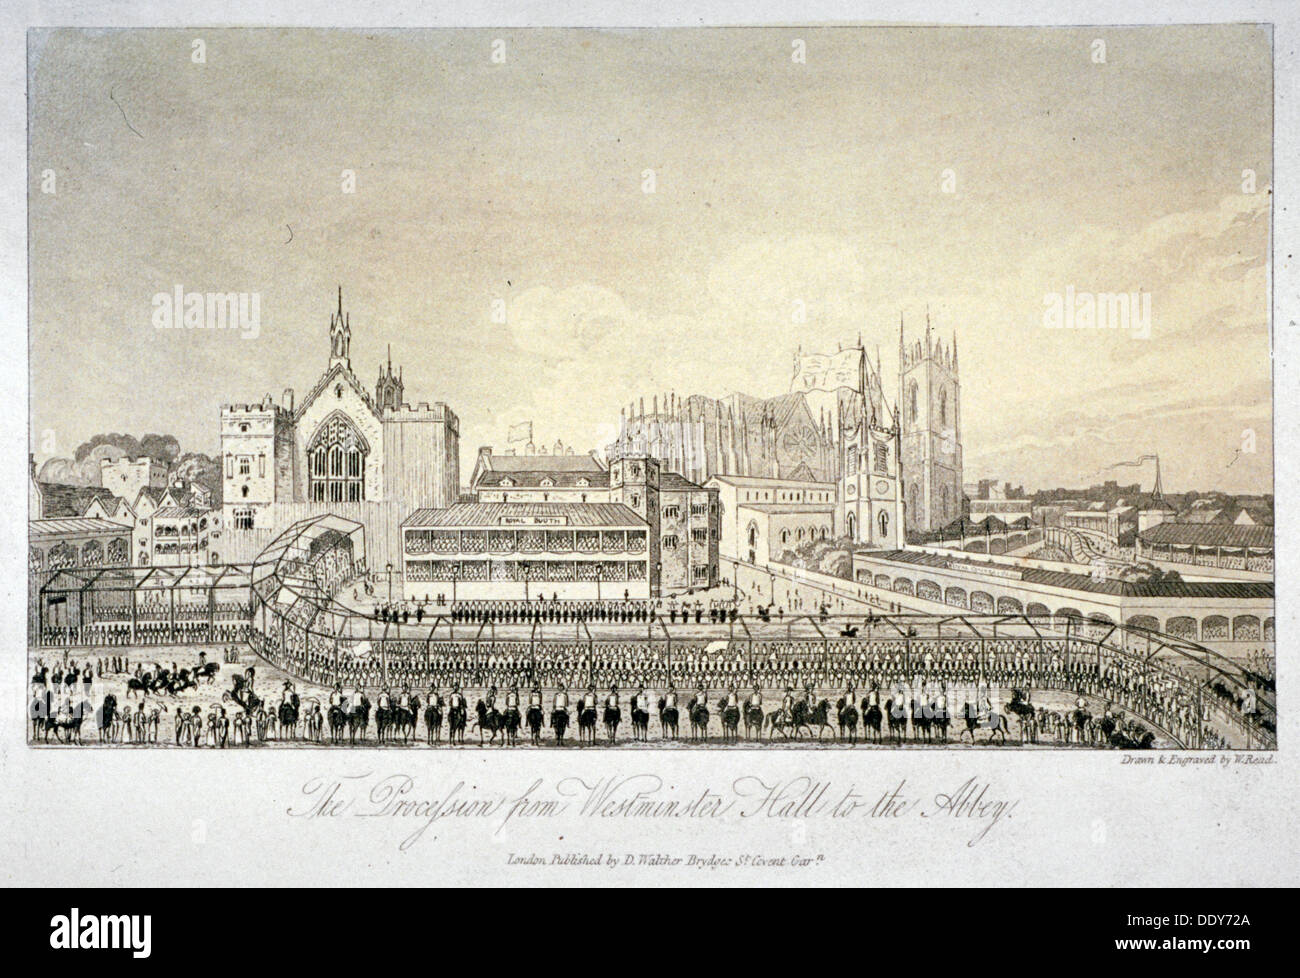 Procession outside Westminster Hall, London, 1821.                                Artist: W Read - Stock Image